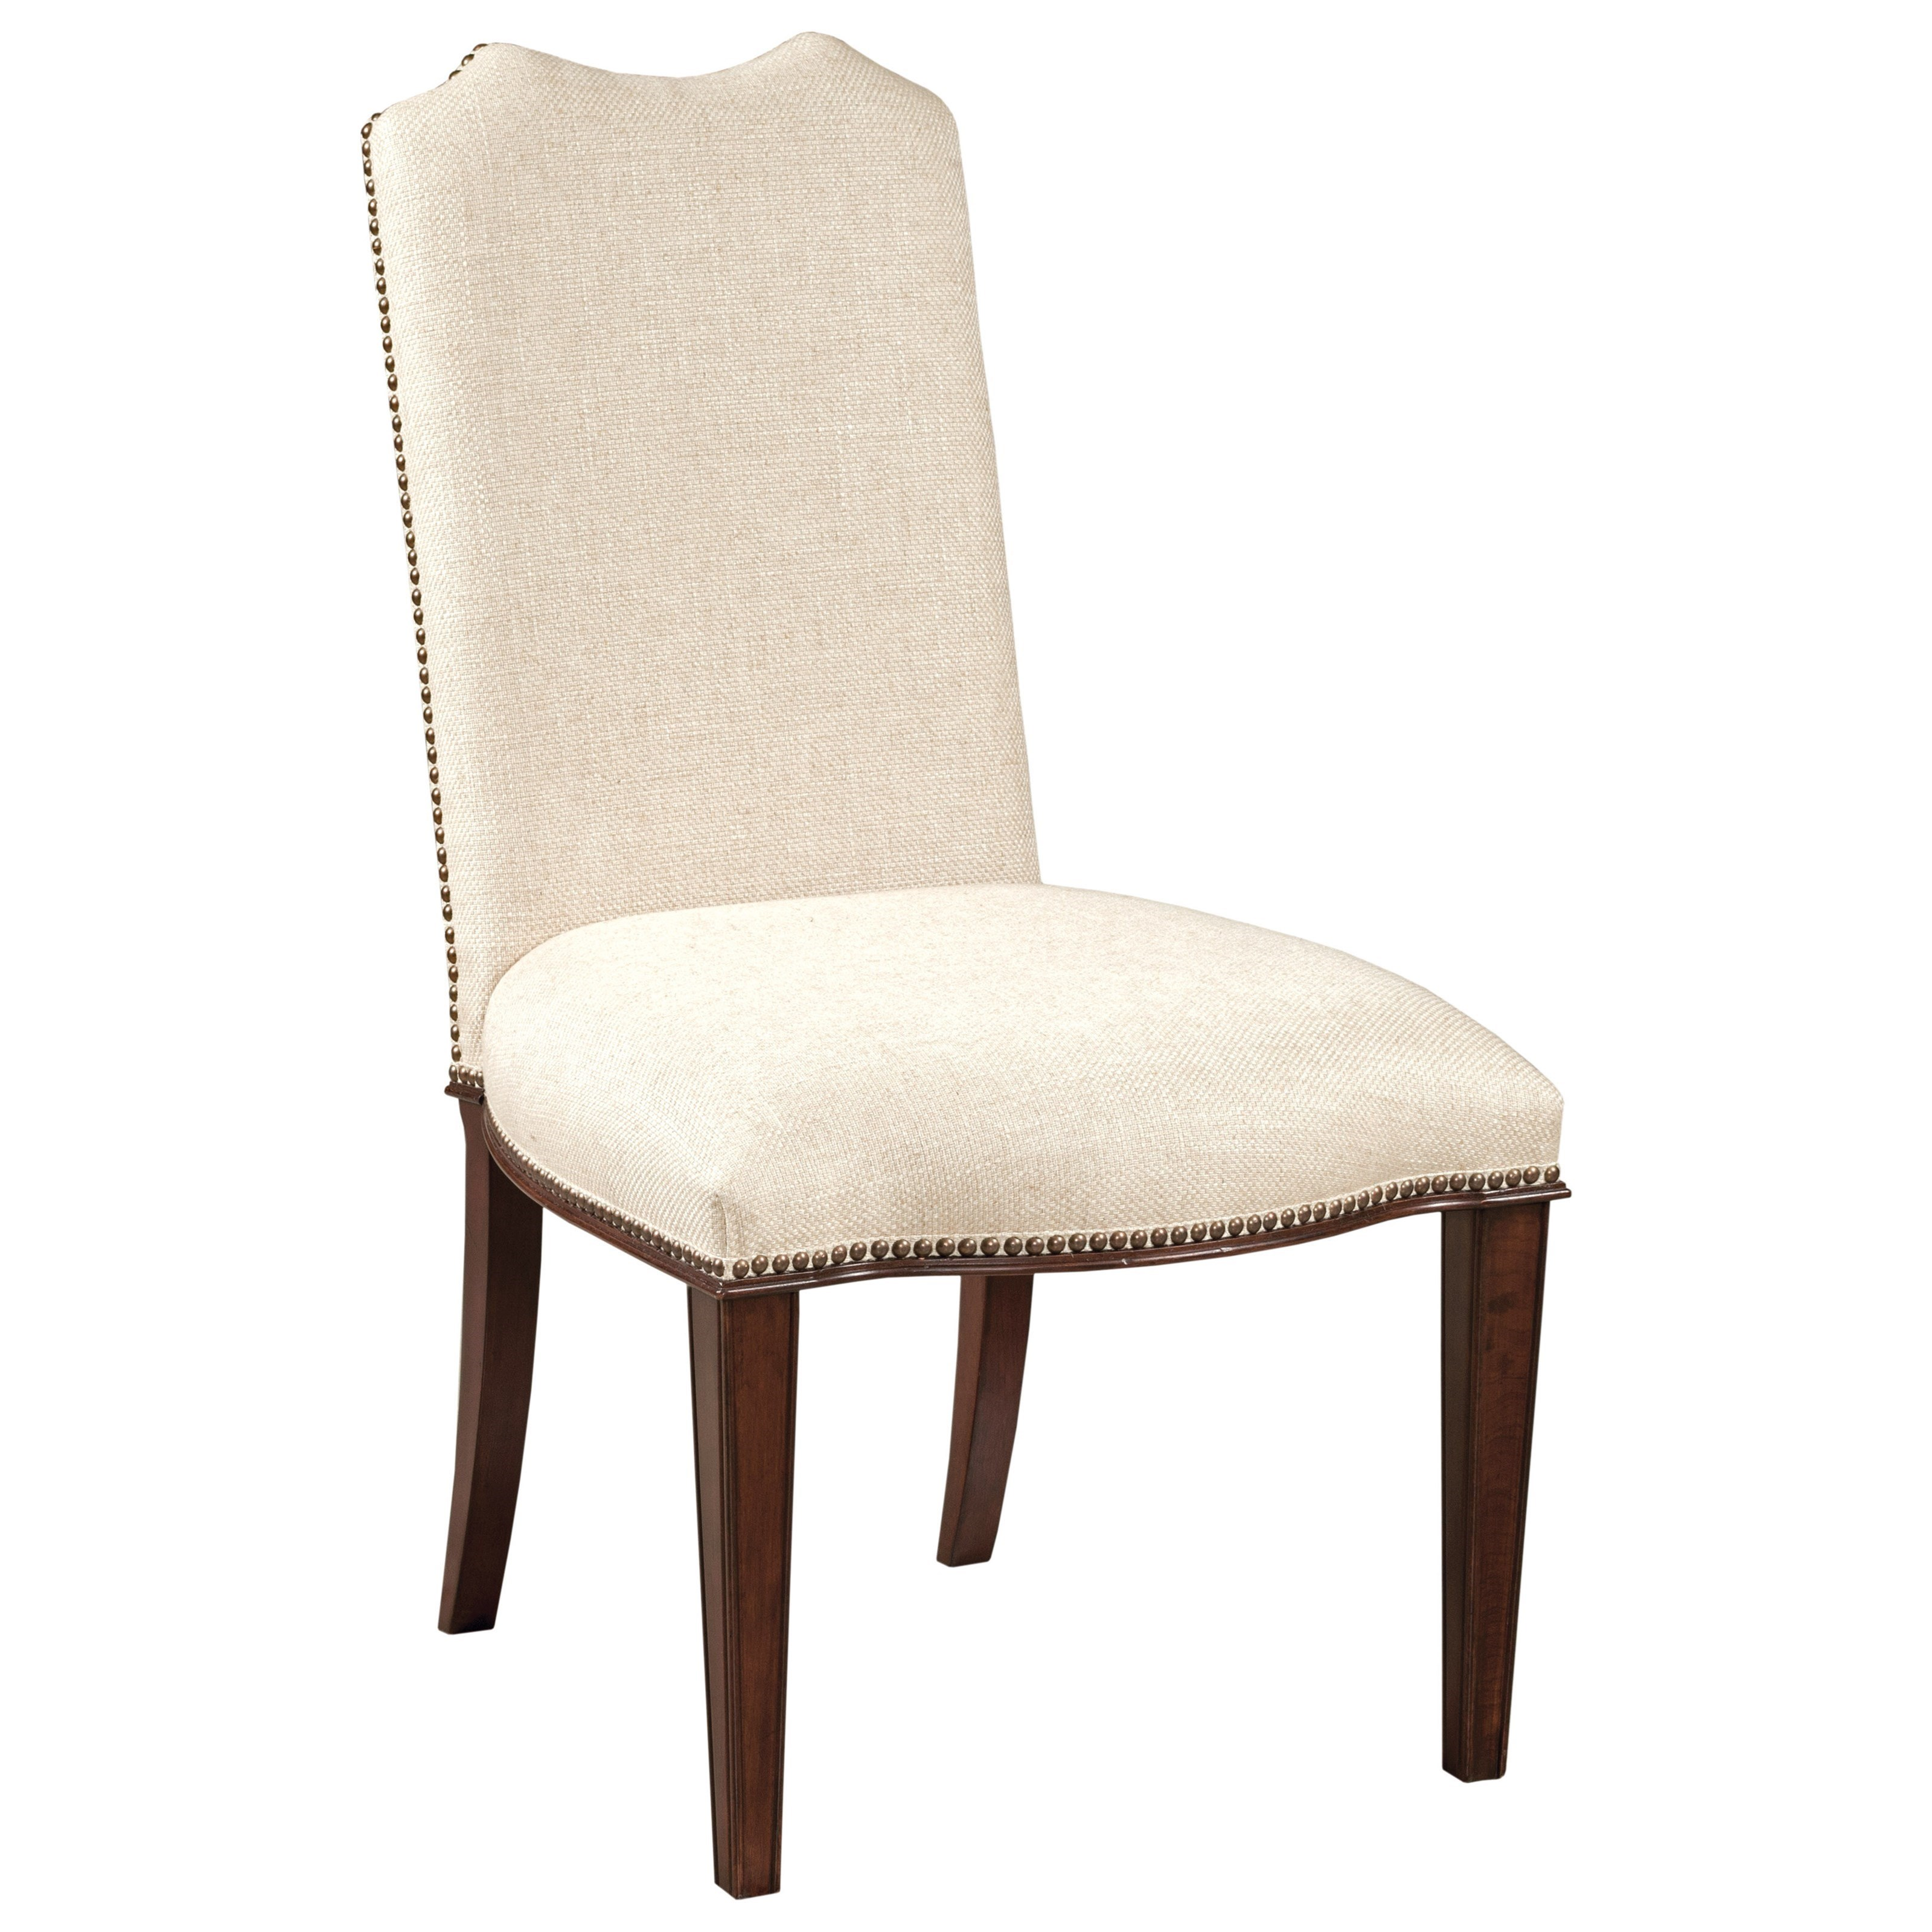 Hadleigh Upholstered Side Chair by Kincaid Furniture at Johnny Janosik